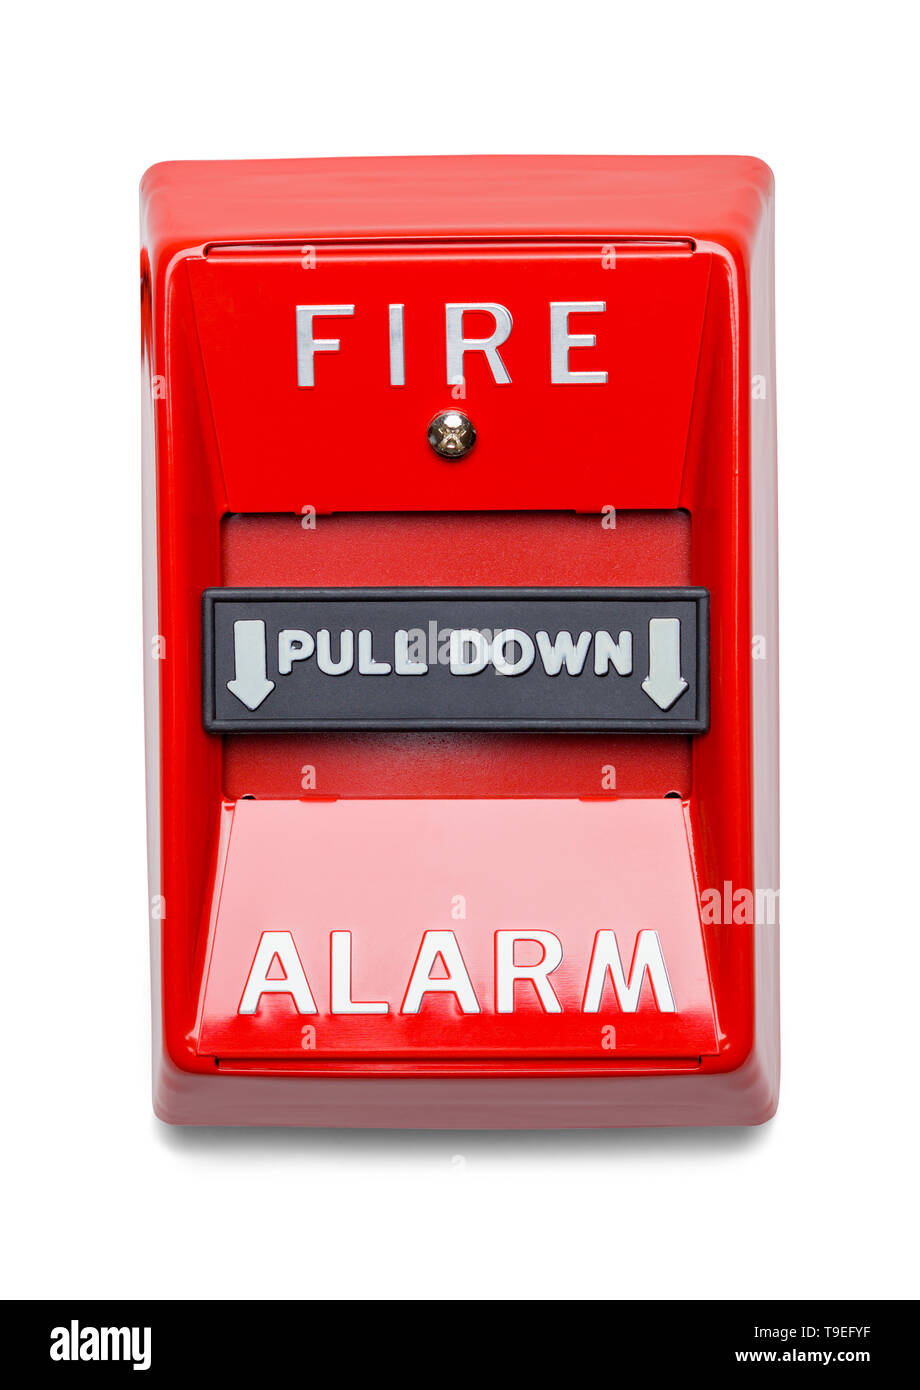 Red Metal Fire Alarm Isolated on White Background. Stock Photo